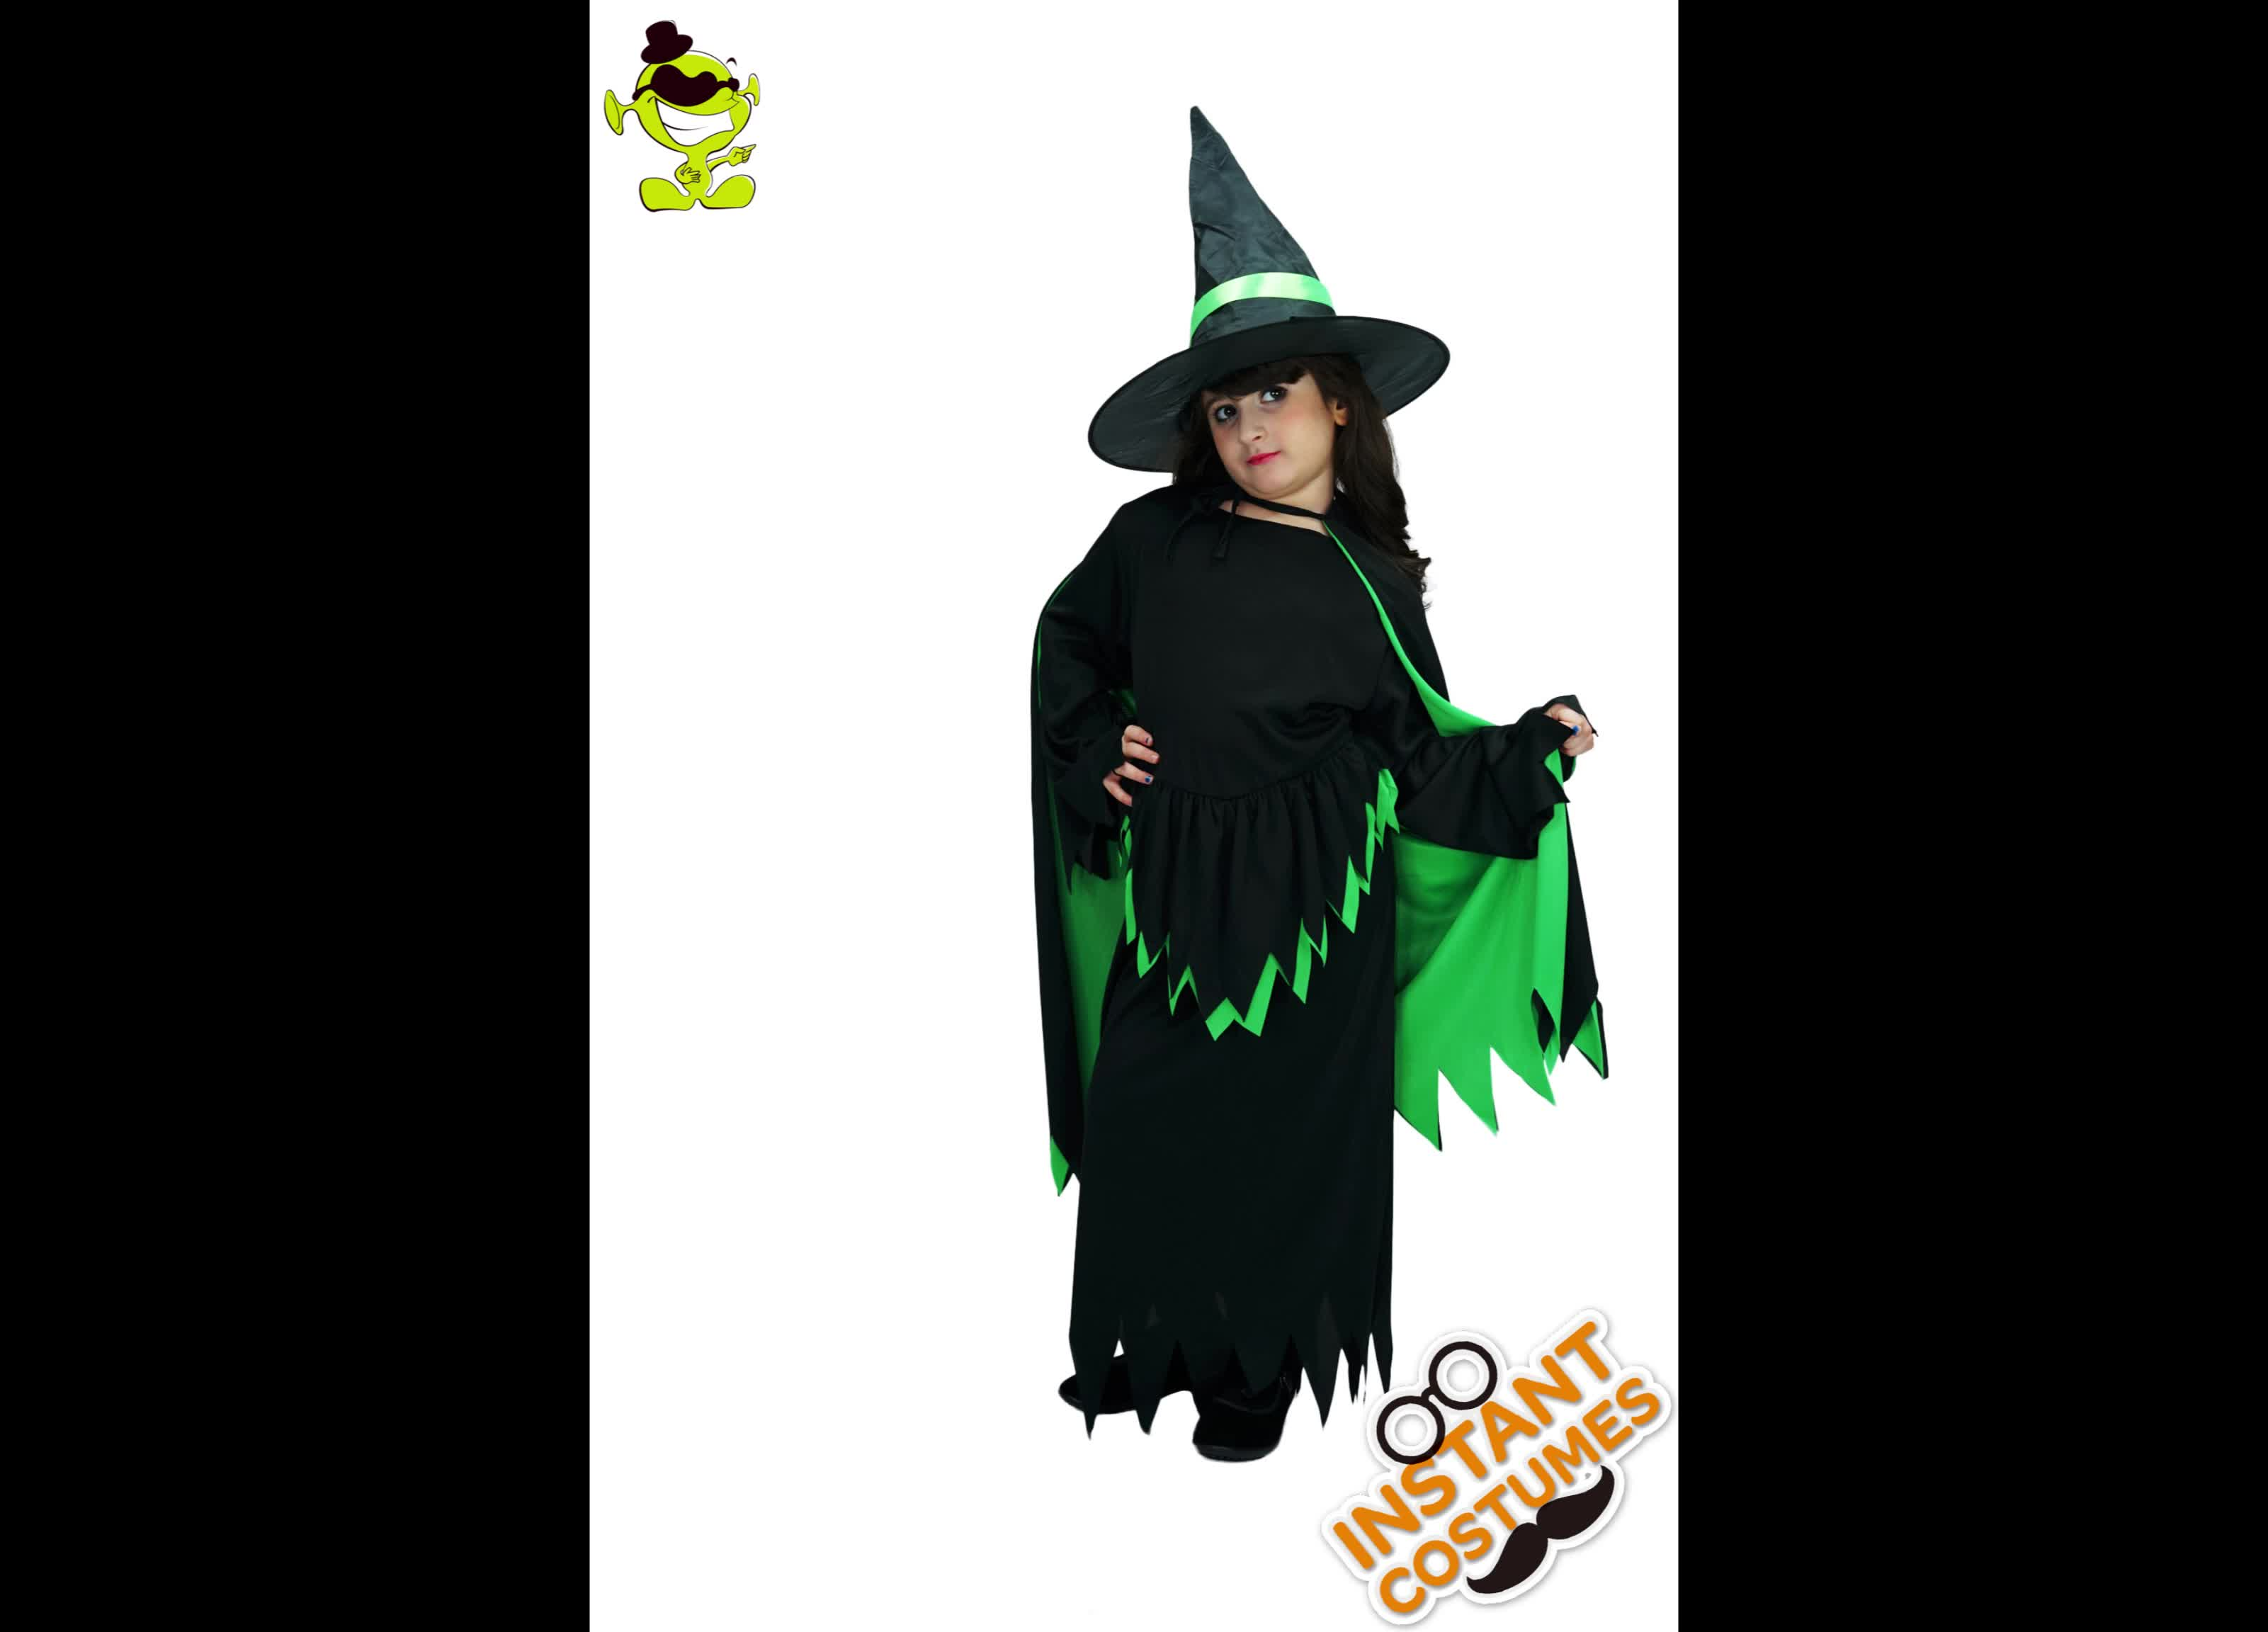 hot girls wicked witch costumes with cape halloween masquerade party